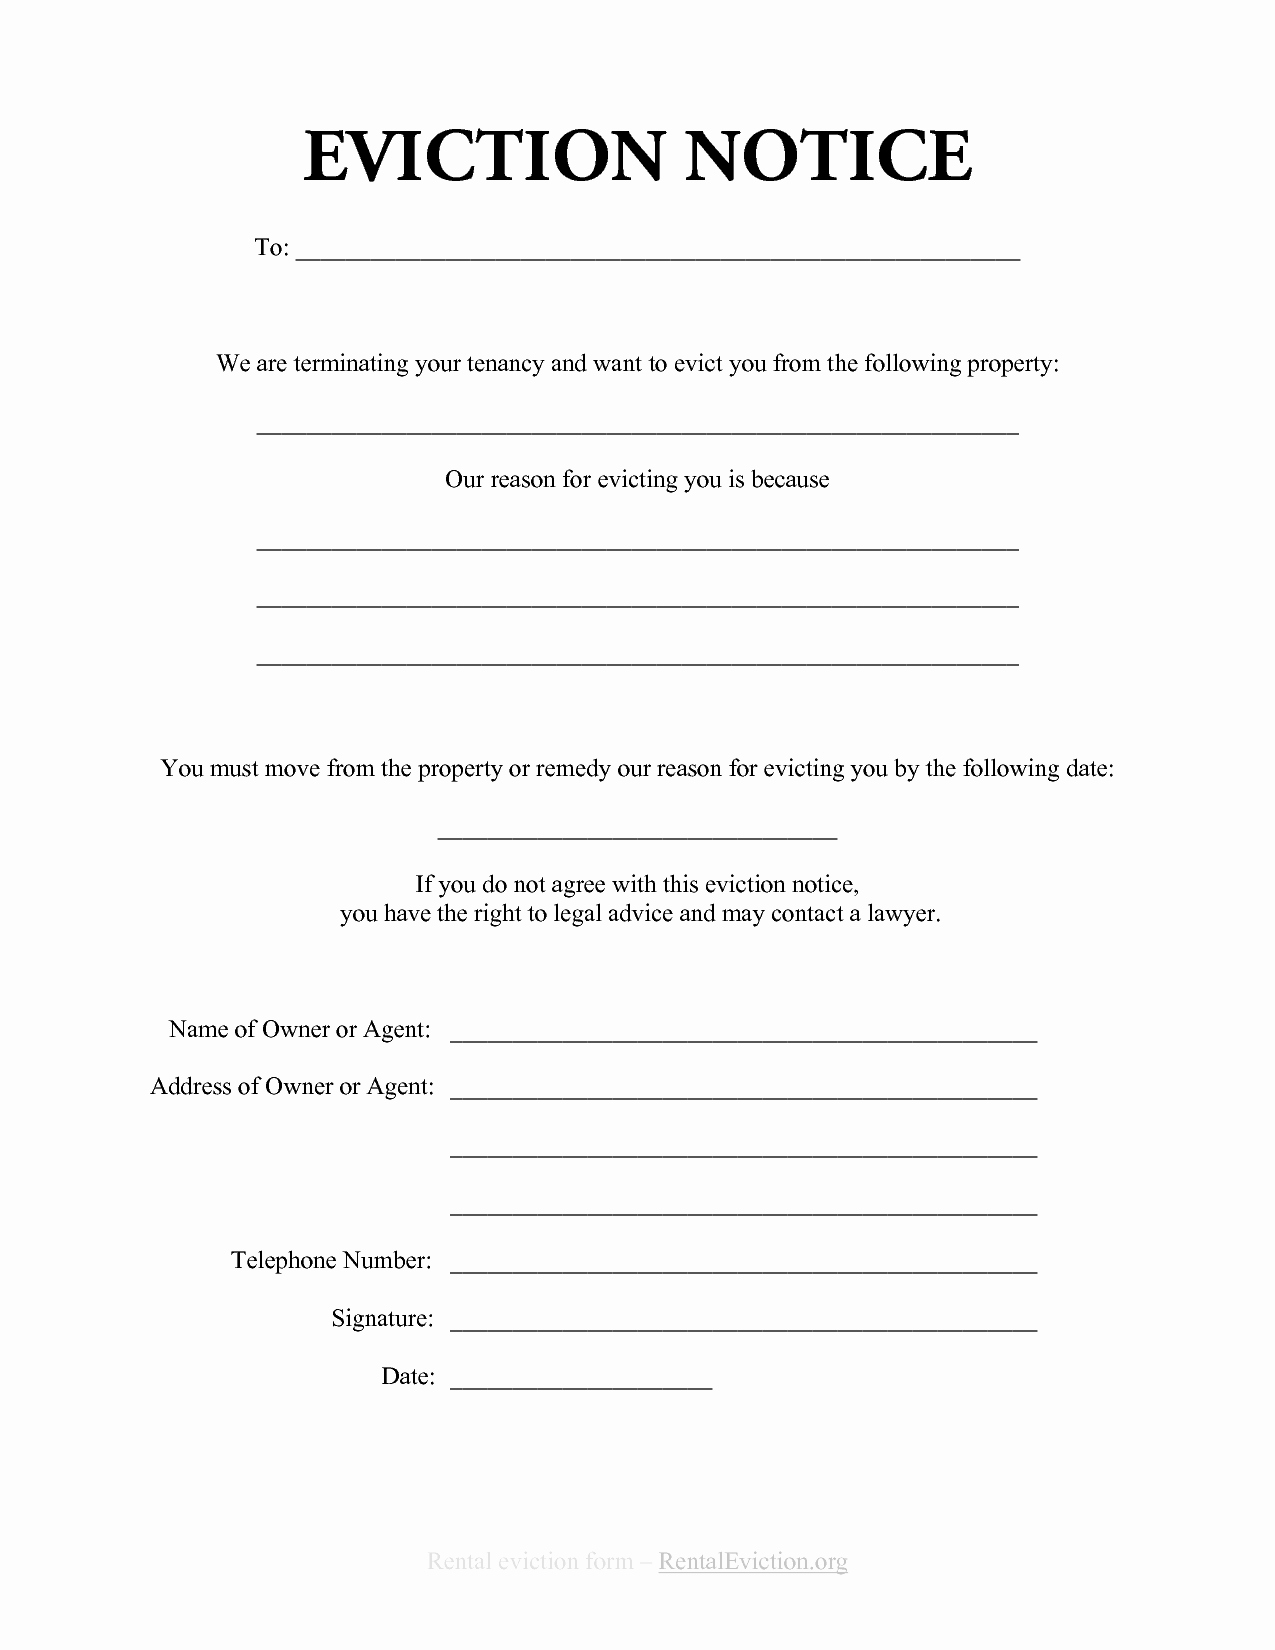 Free Eviction Notices Templates Fresh Free Print Out Eviction Notices